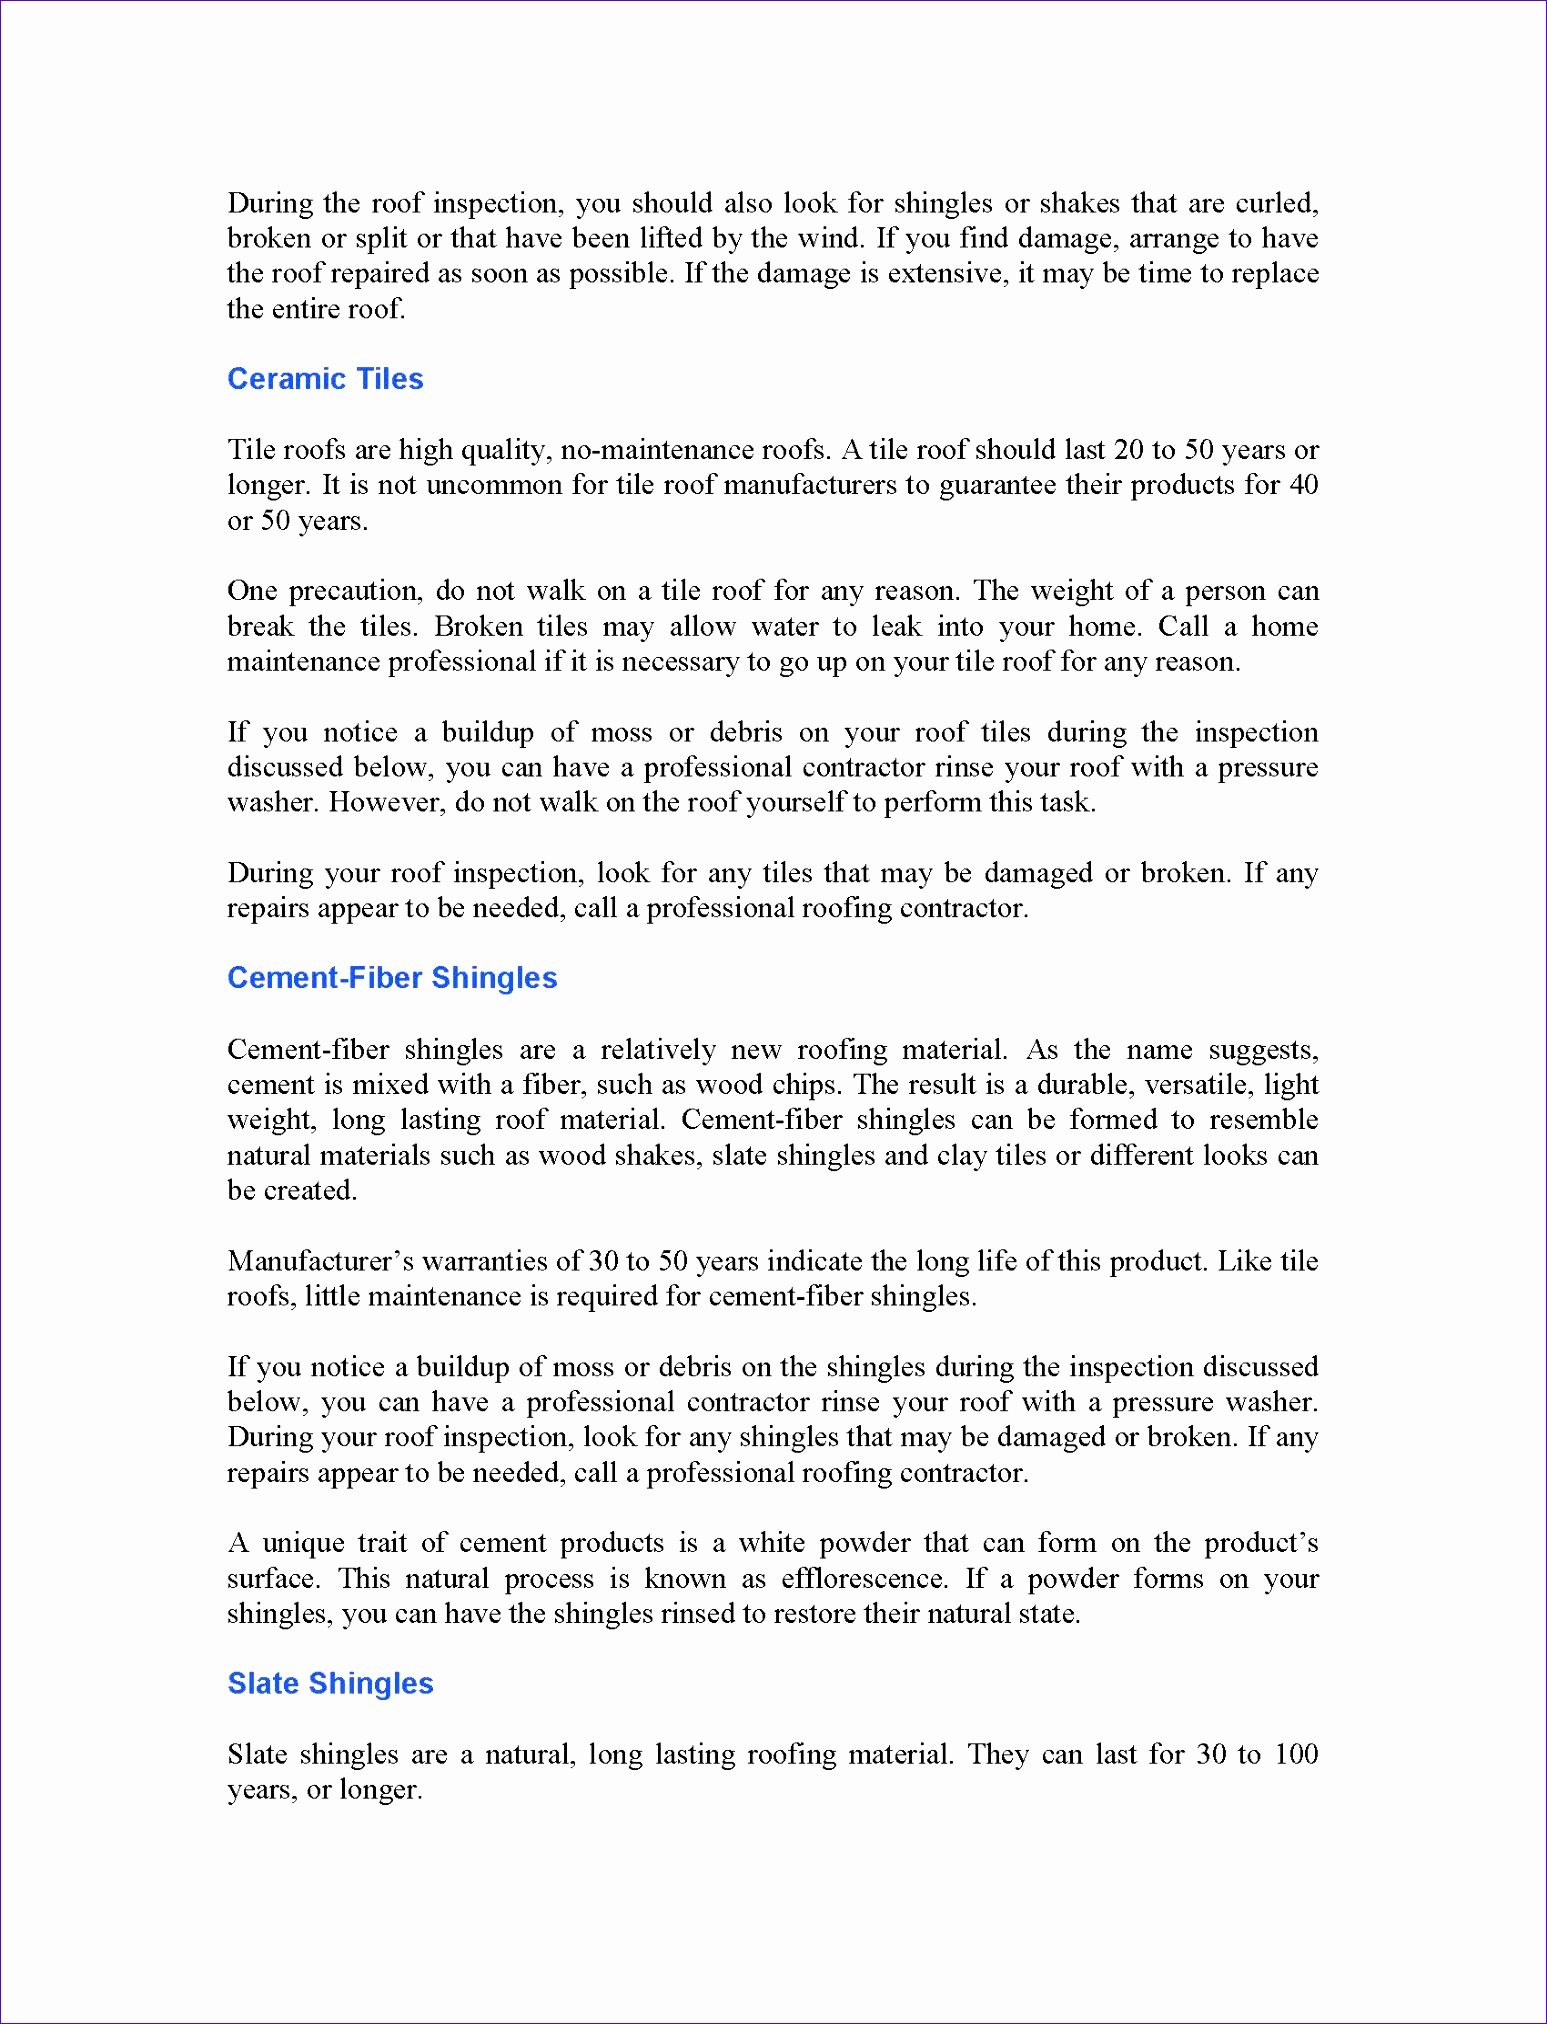 Home care Guide Page 13